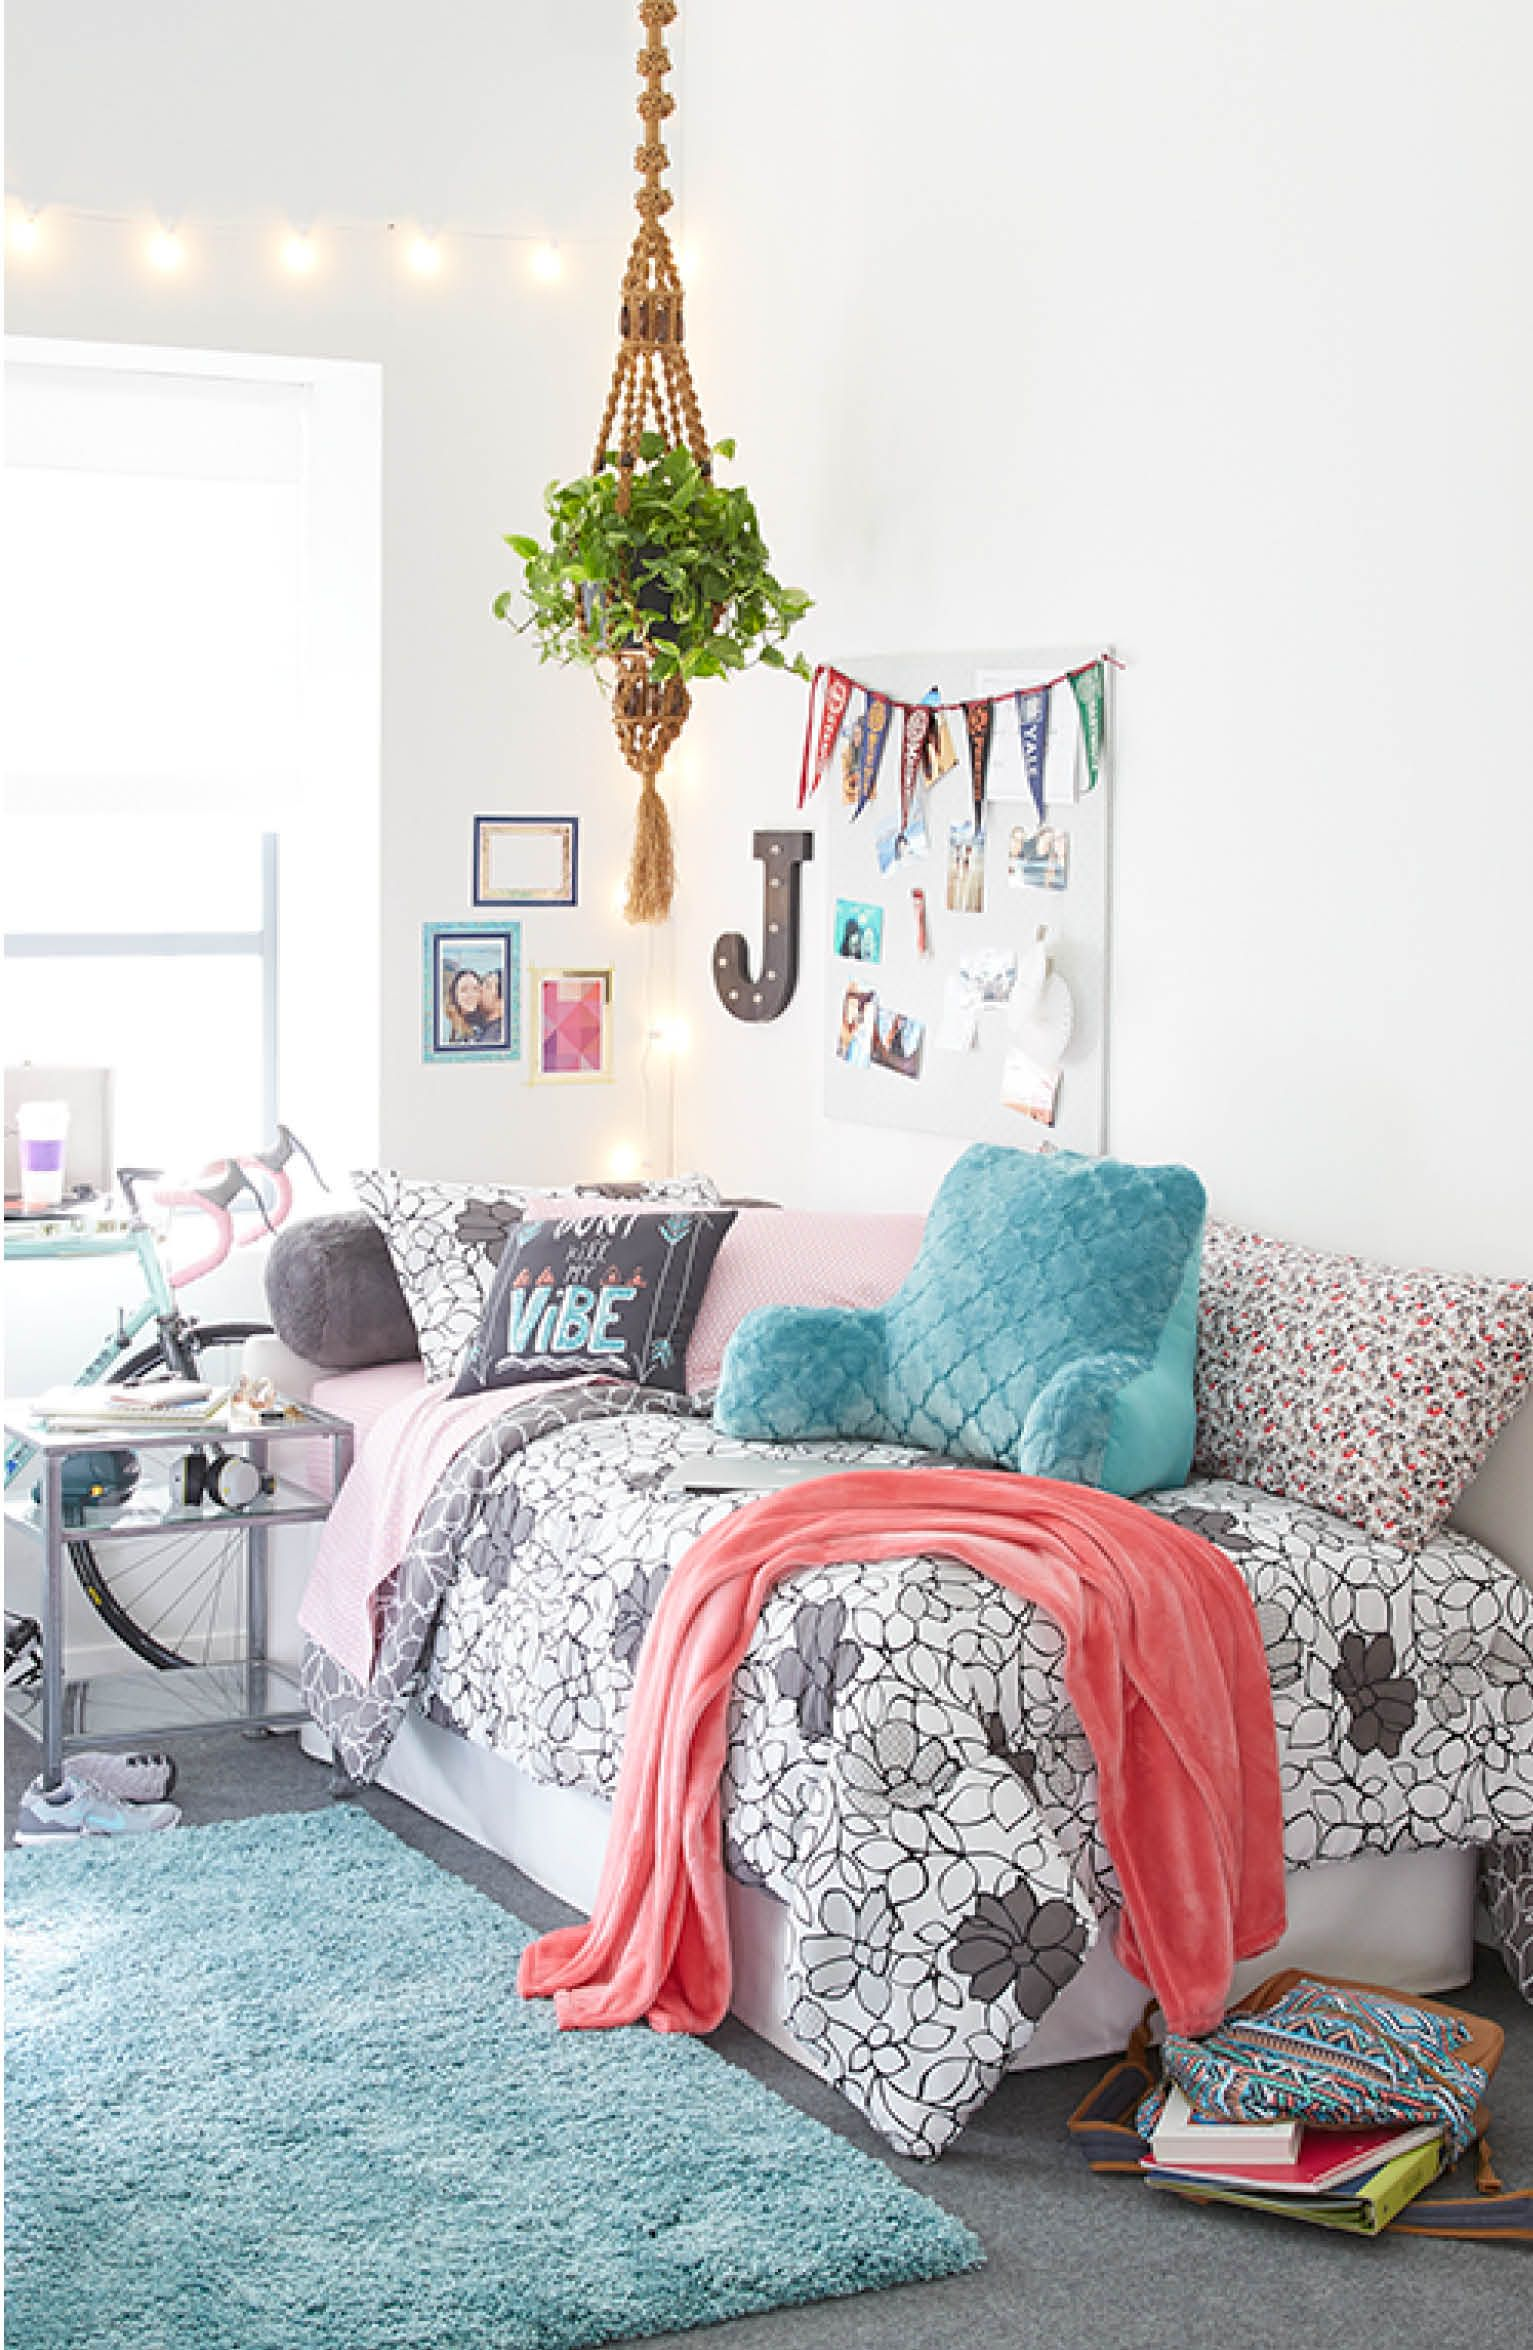 Add Fun Patterns, Comfy Bedding, Pop Of Color And Of Course Those Little  Details Like Plants Or Photos That Make Your Dorm Room Feel Like Home Away  From ... Part 76